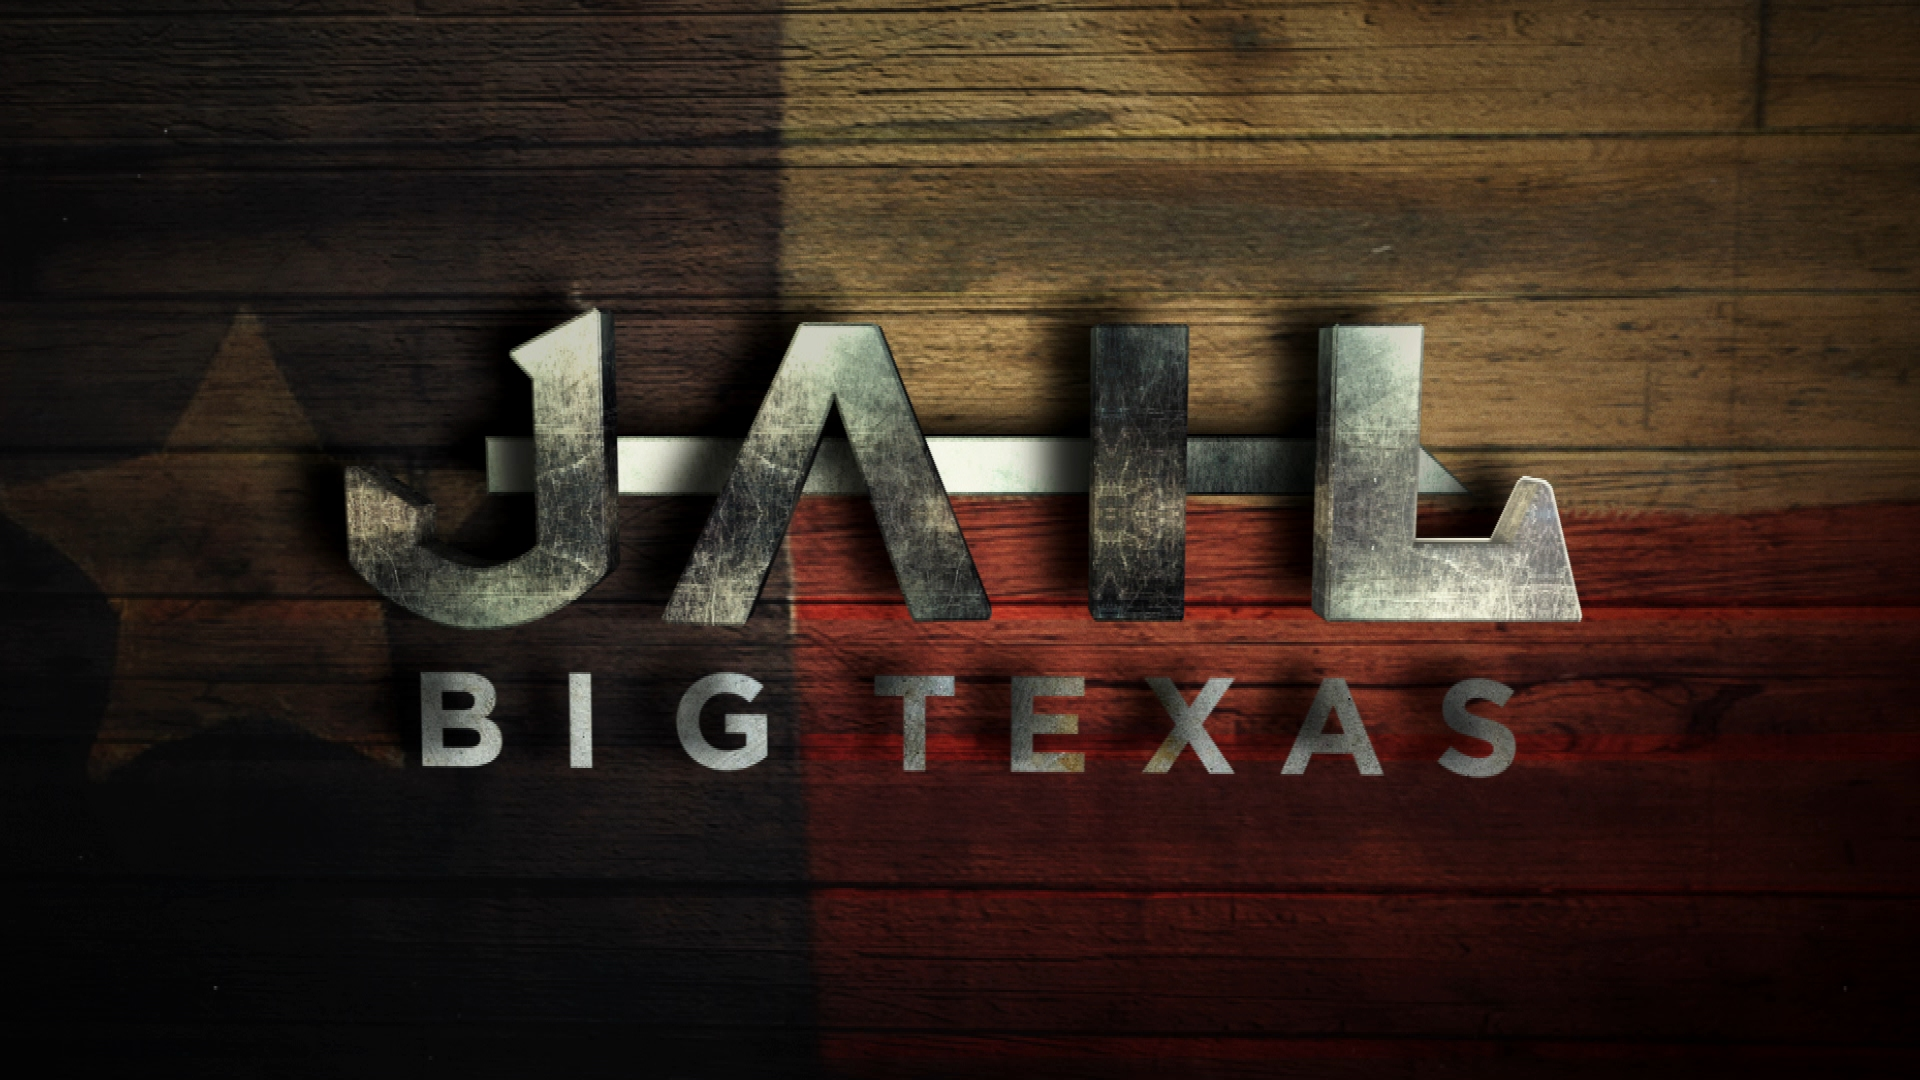 JAIL BIG TEXAS